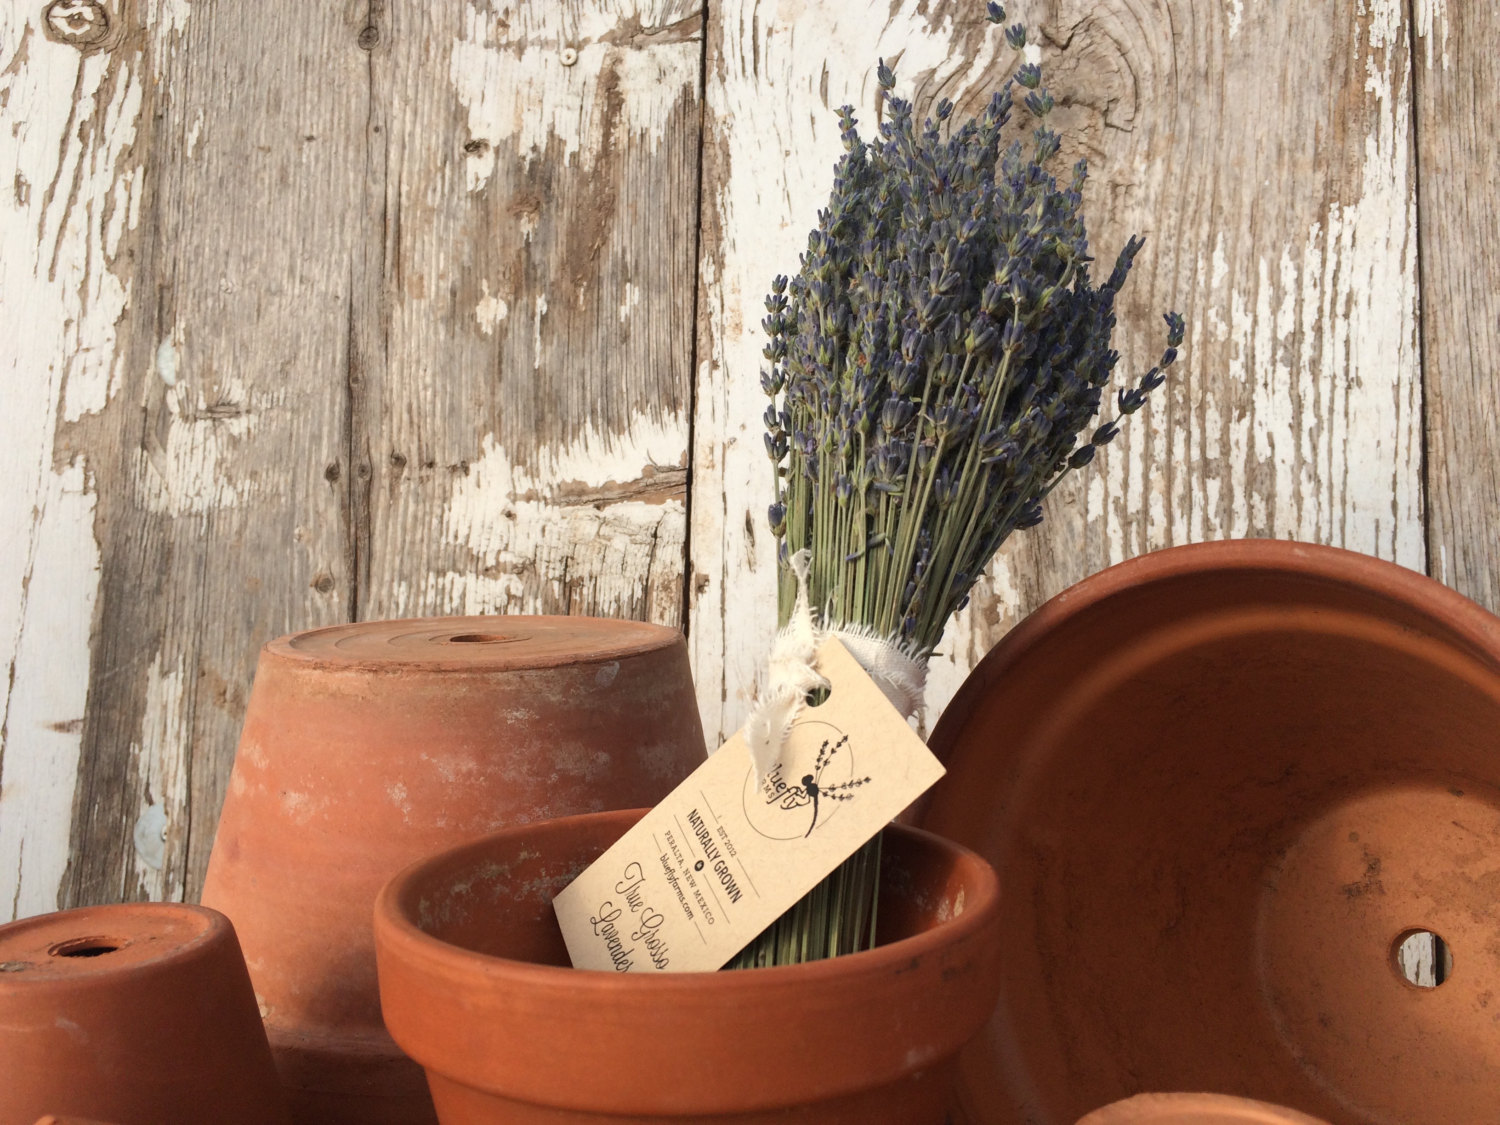 Dried lavender bundle in a pot.